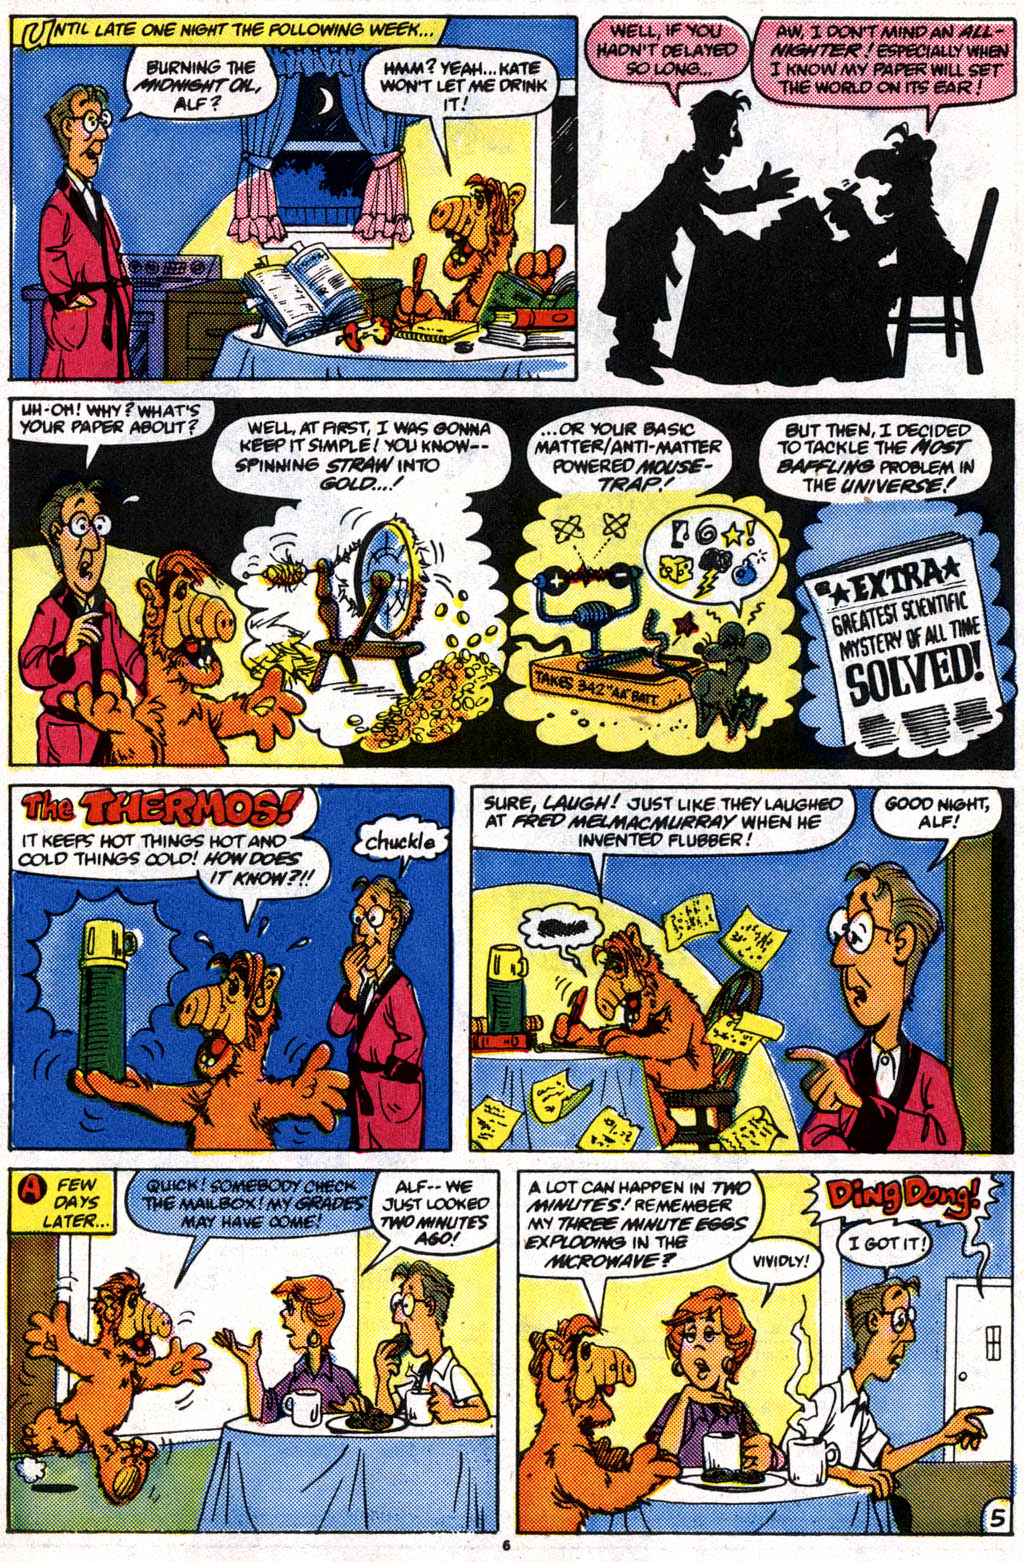 Read online ALF comic -  Issue #10 - 6